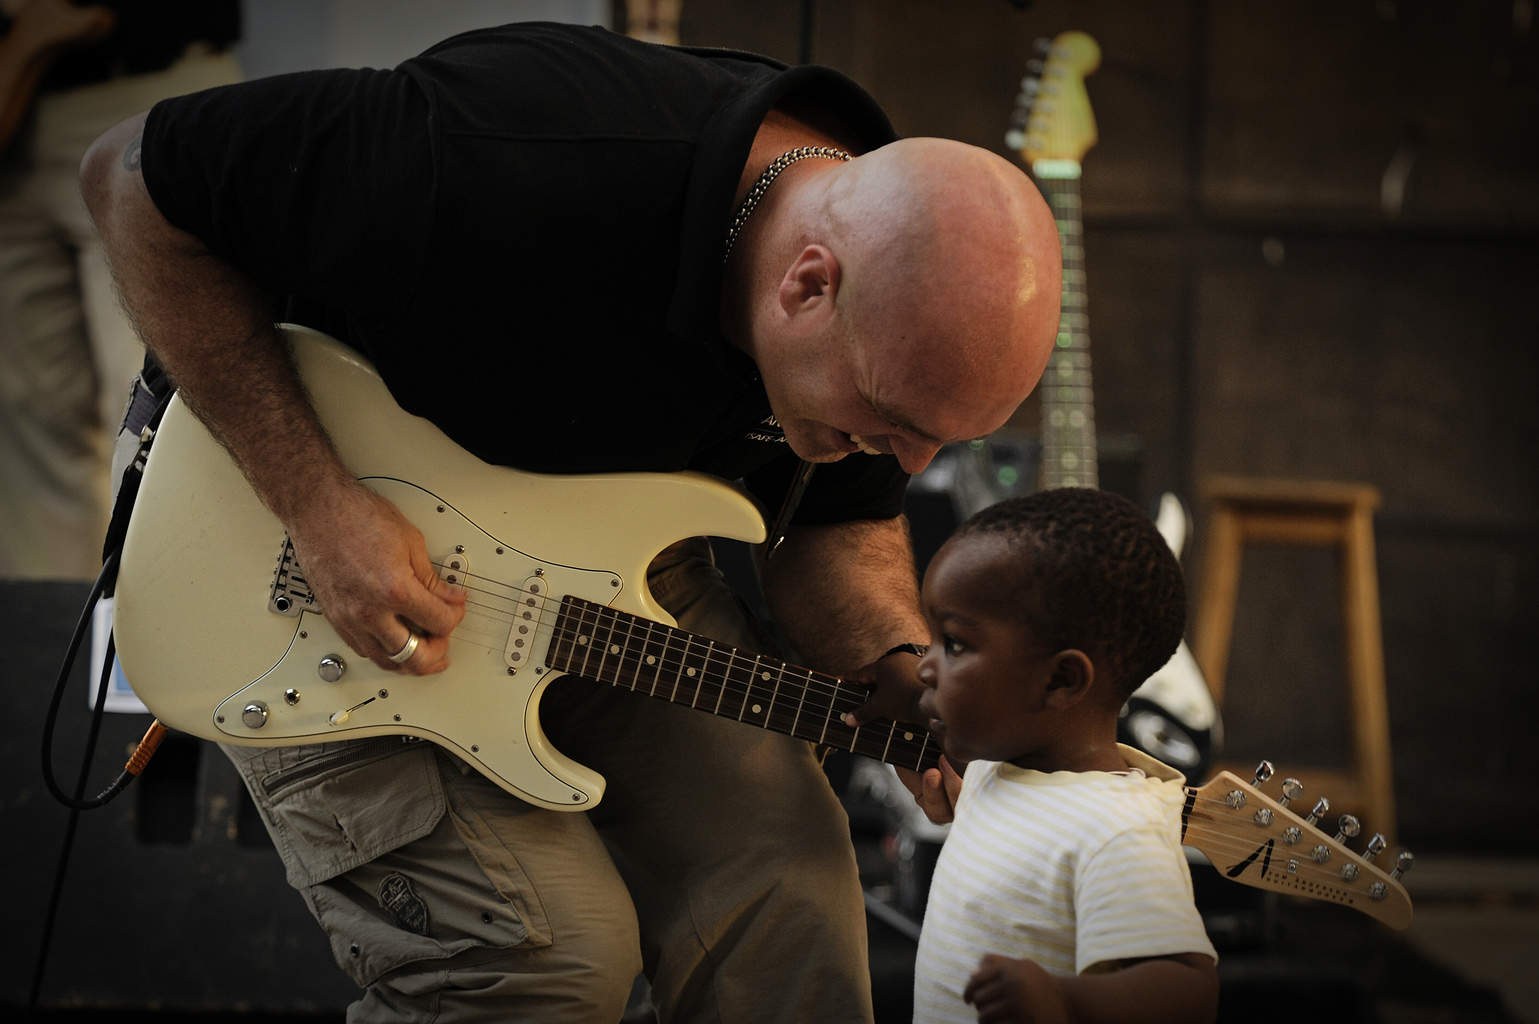 Tech. Sgt. Jason Cale, U.S. Air Forces in Europe and Air Forces Africa band guitarist, offers a child a chance to play his guitar during a concert in Dakar, Senegal, June 14, 2014, at a local cultural center. USAFE-AFAFRICA Airmen are in Senegal for African Partnership Flight, a program designed to improve communication and interoperability between regional partners in Africa. The band will be playing multiple venues in the area to inspire children and musicians through the universal language of music. (U.S. Air Force photo/ Staff Sgt. Ryan Crane)